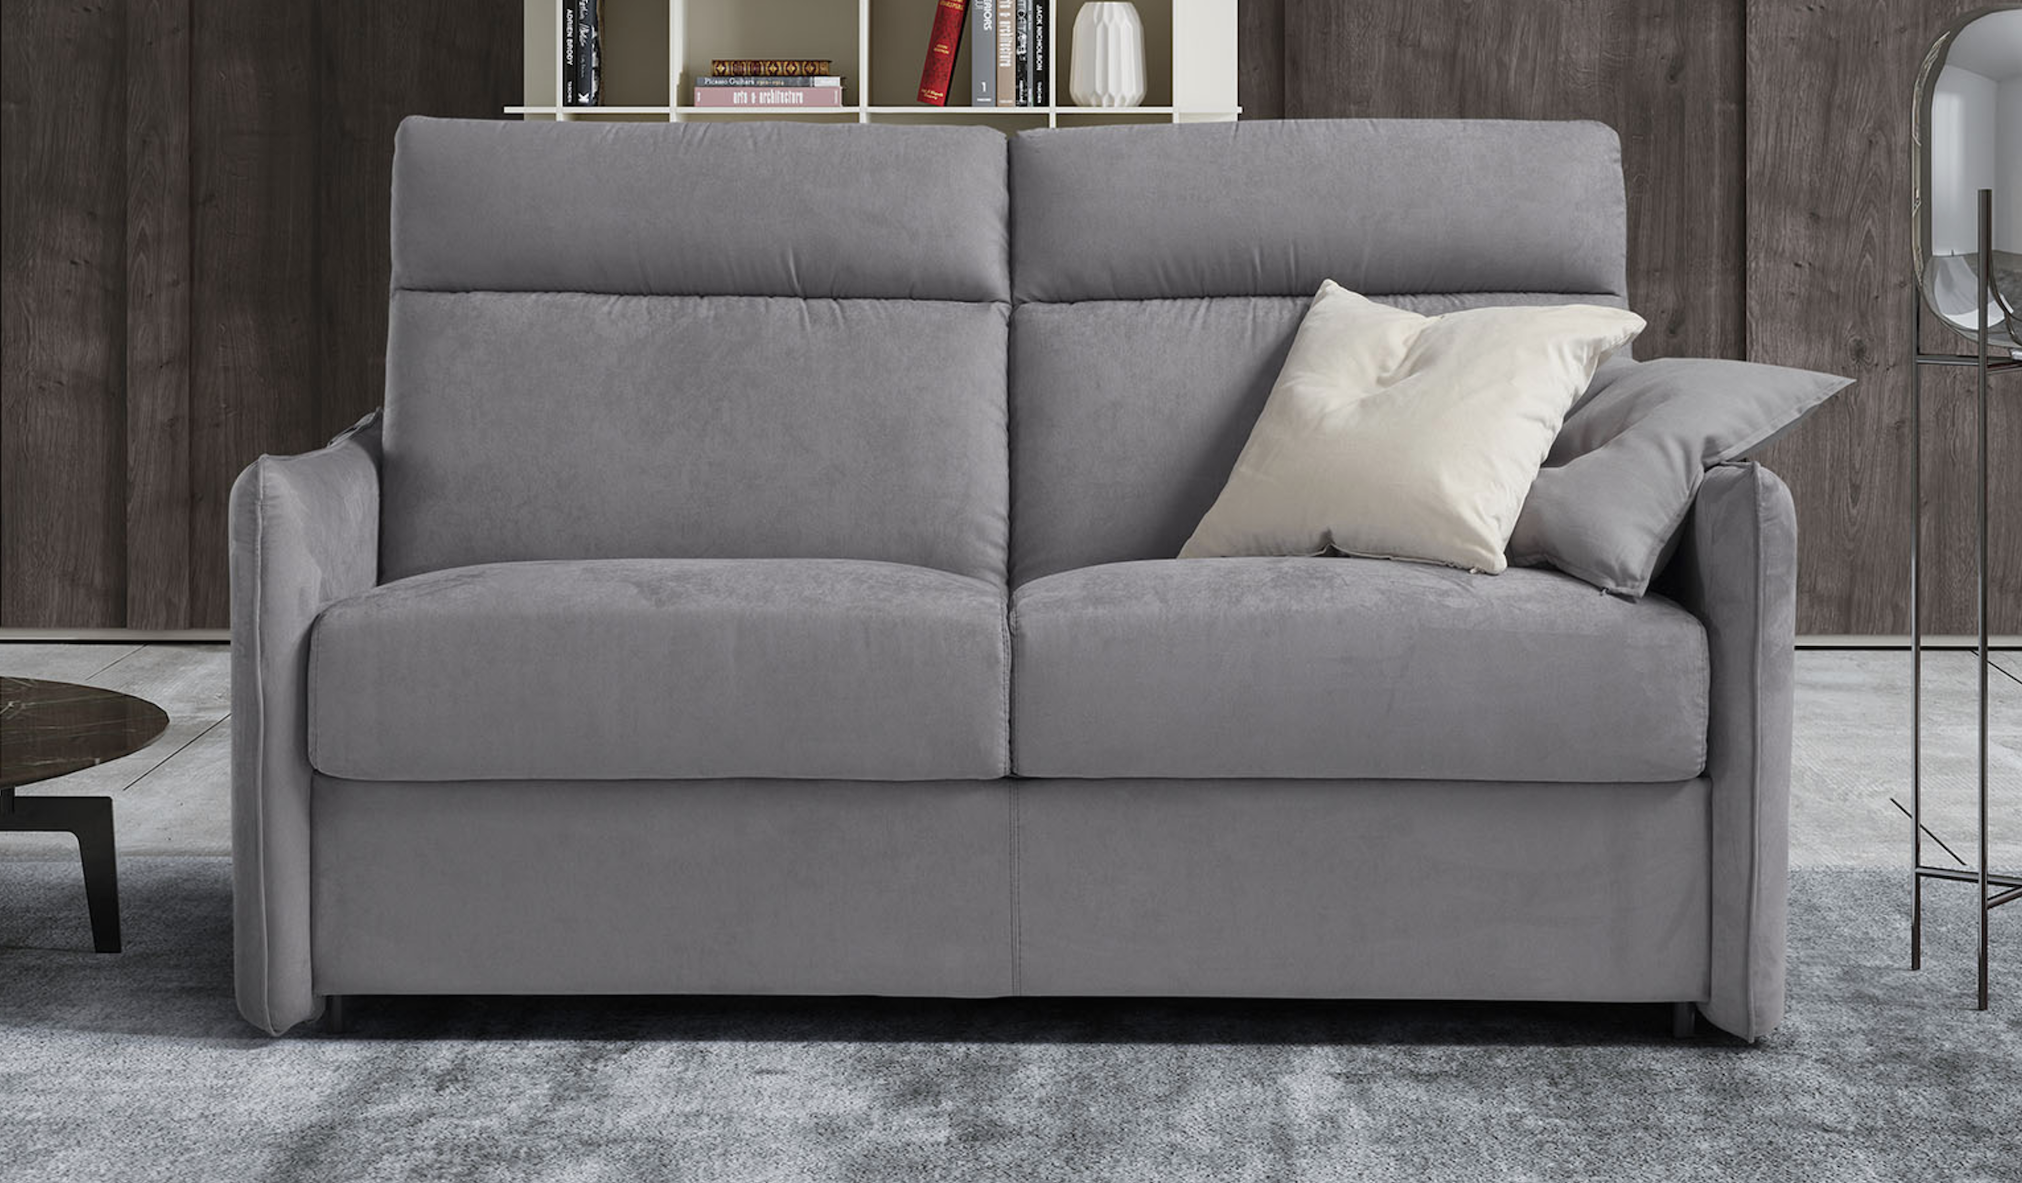 AIMEE Italian Crafted 3 Seat Sofa Bed in PLAZA SILVER RRP £1979 - Image 2 of 9